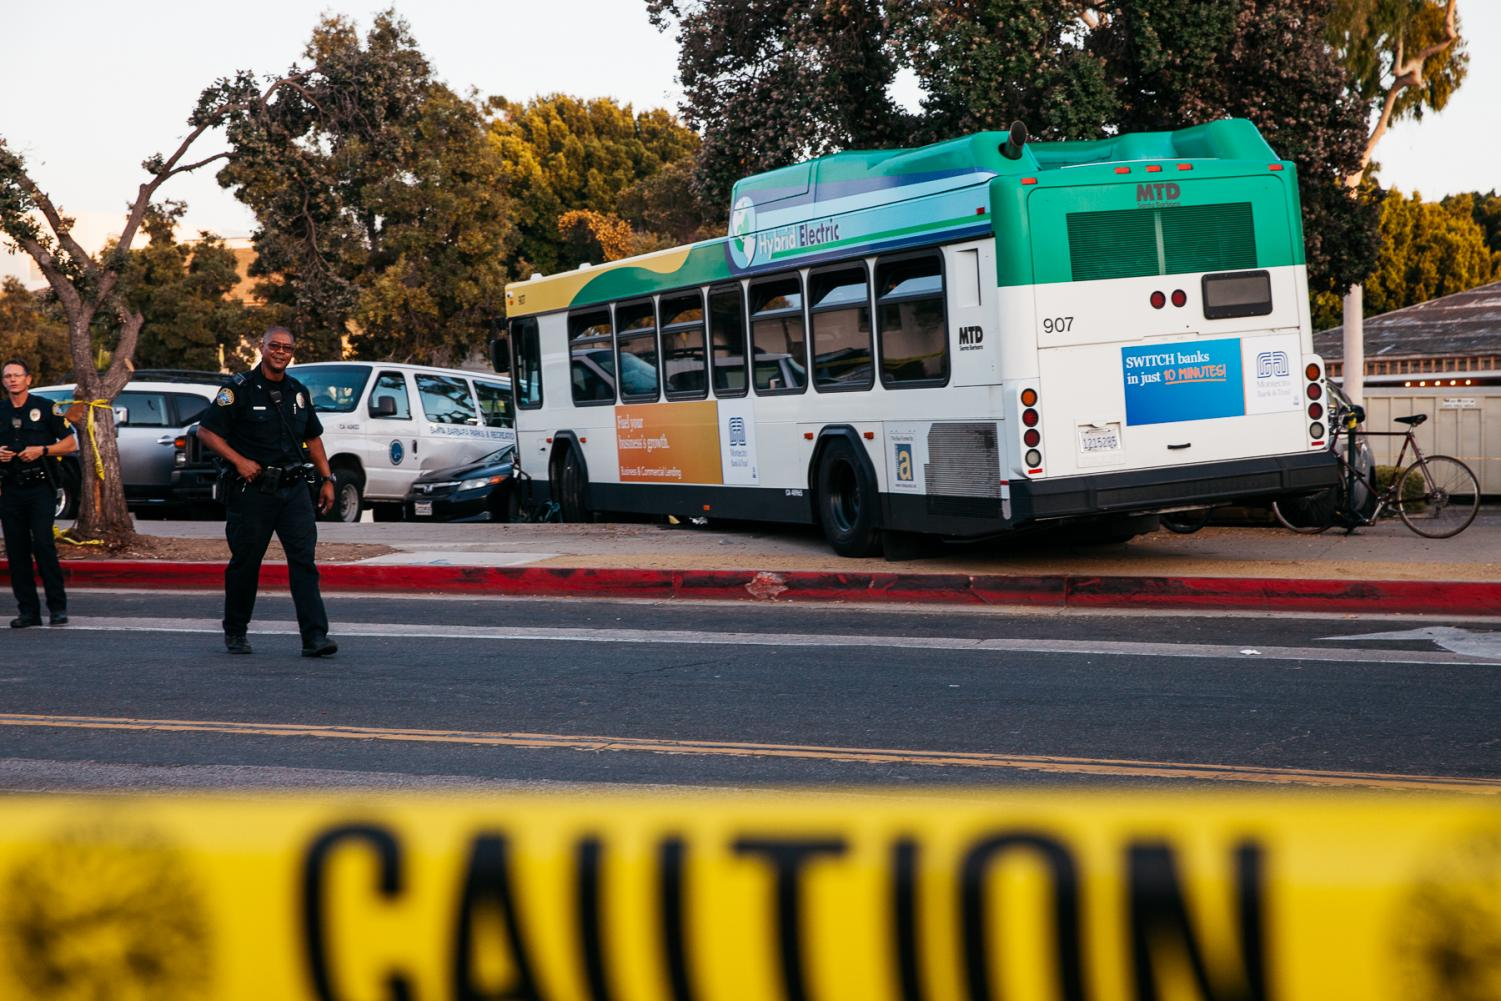 Metropolitan Transit District Bus 907 drove onto the sidewalk killing one woman, critically injuring one man and injuring several bus passengers on Wednesday, Oct. 9, 2019, on Chapala and West Figueroa Street in Downtown Santa Barbara, Calif.